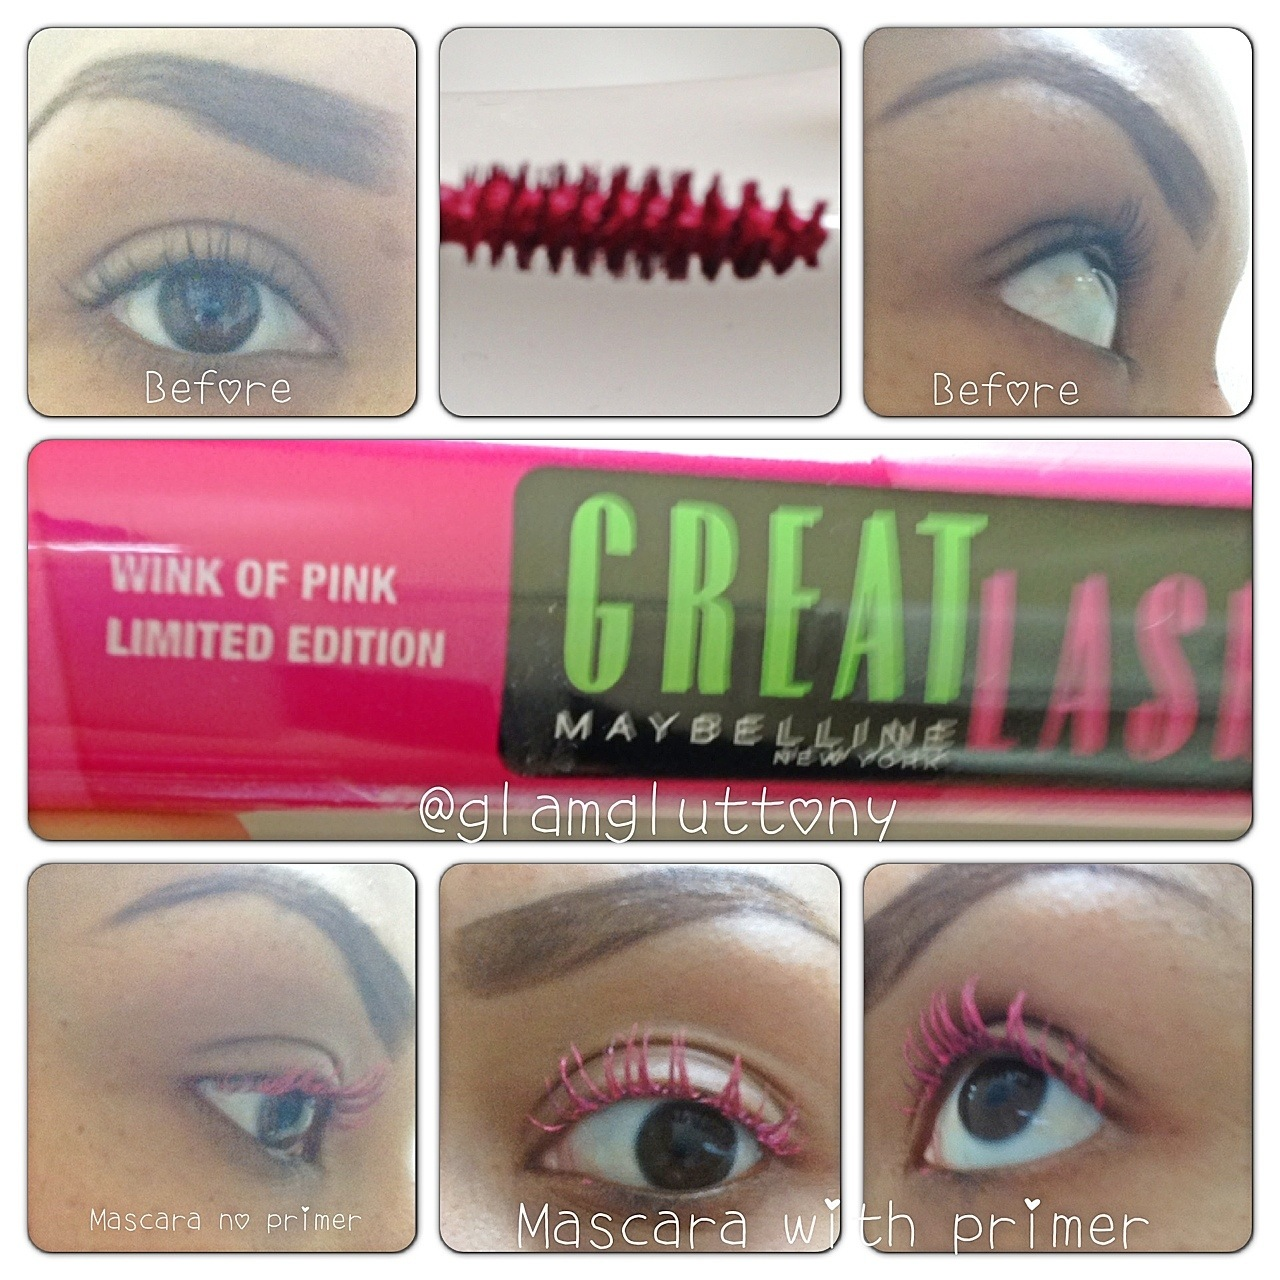 2c1e27521ee We love lashes Wednesday: Wink of Pink Maybelline Great Lash